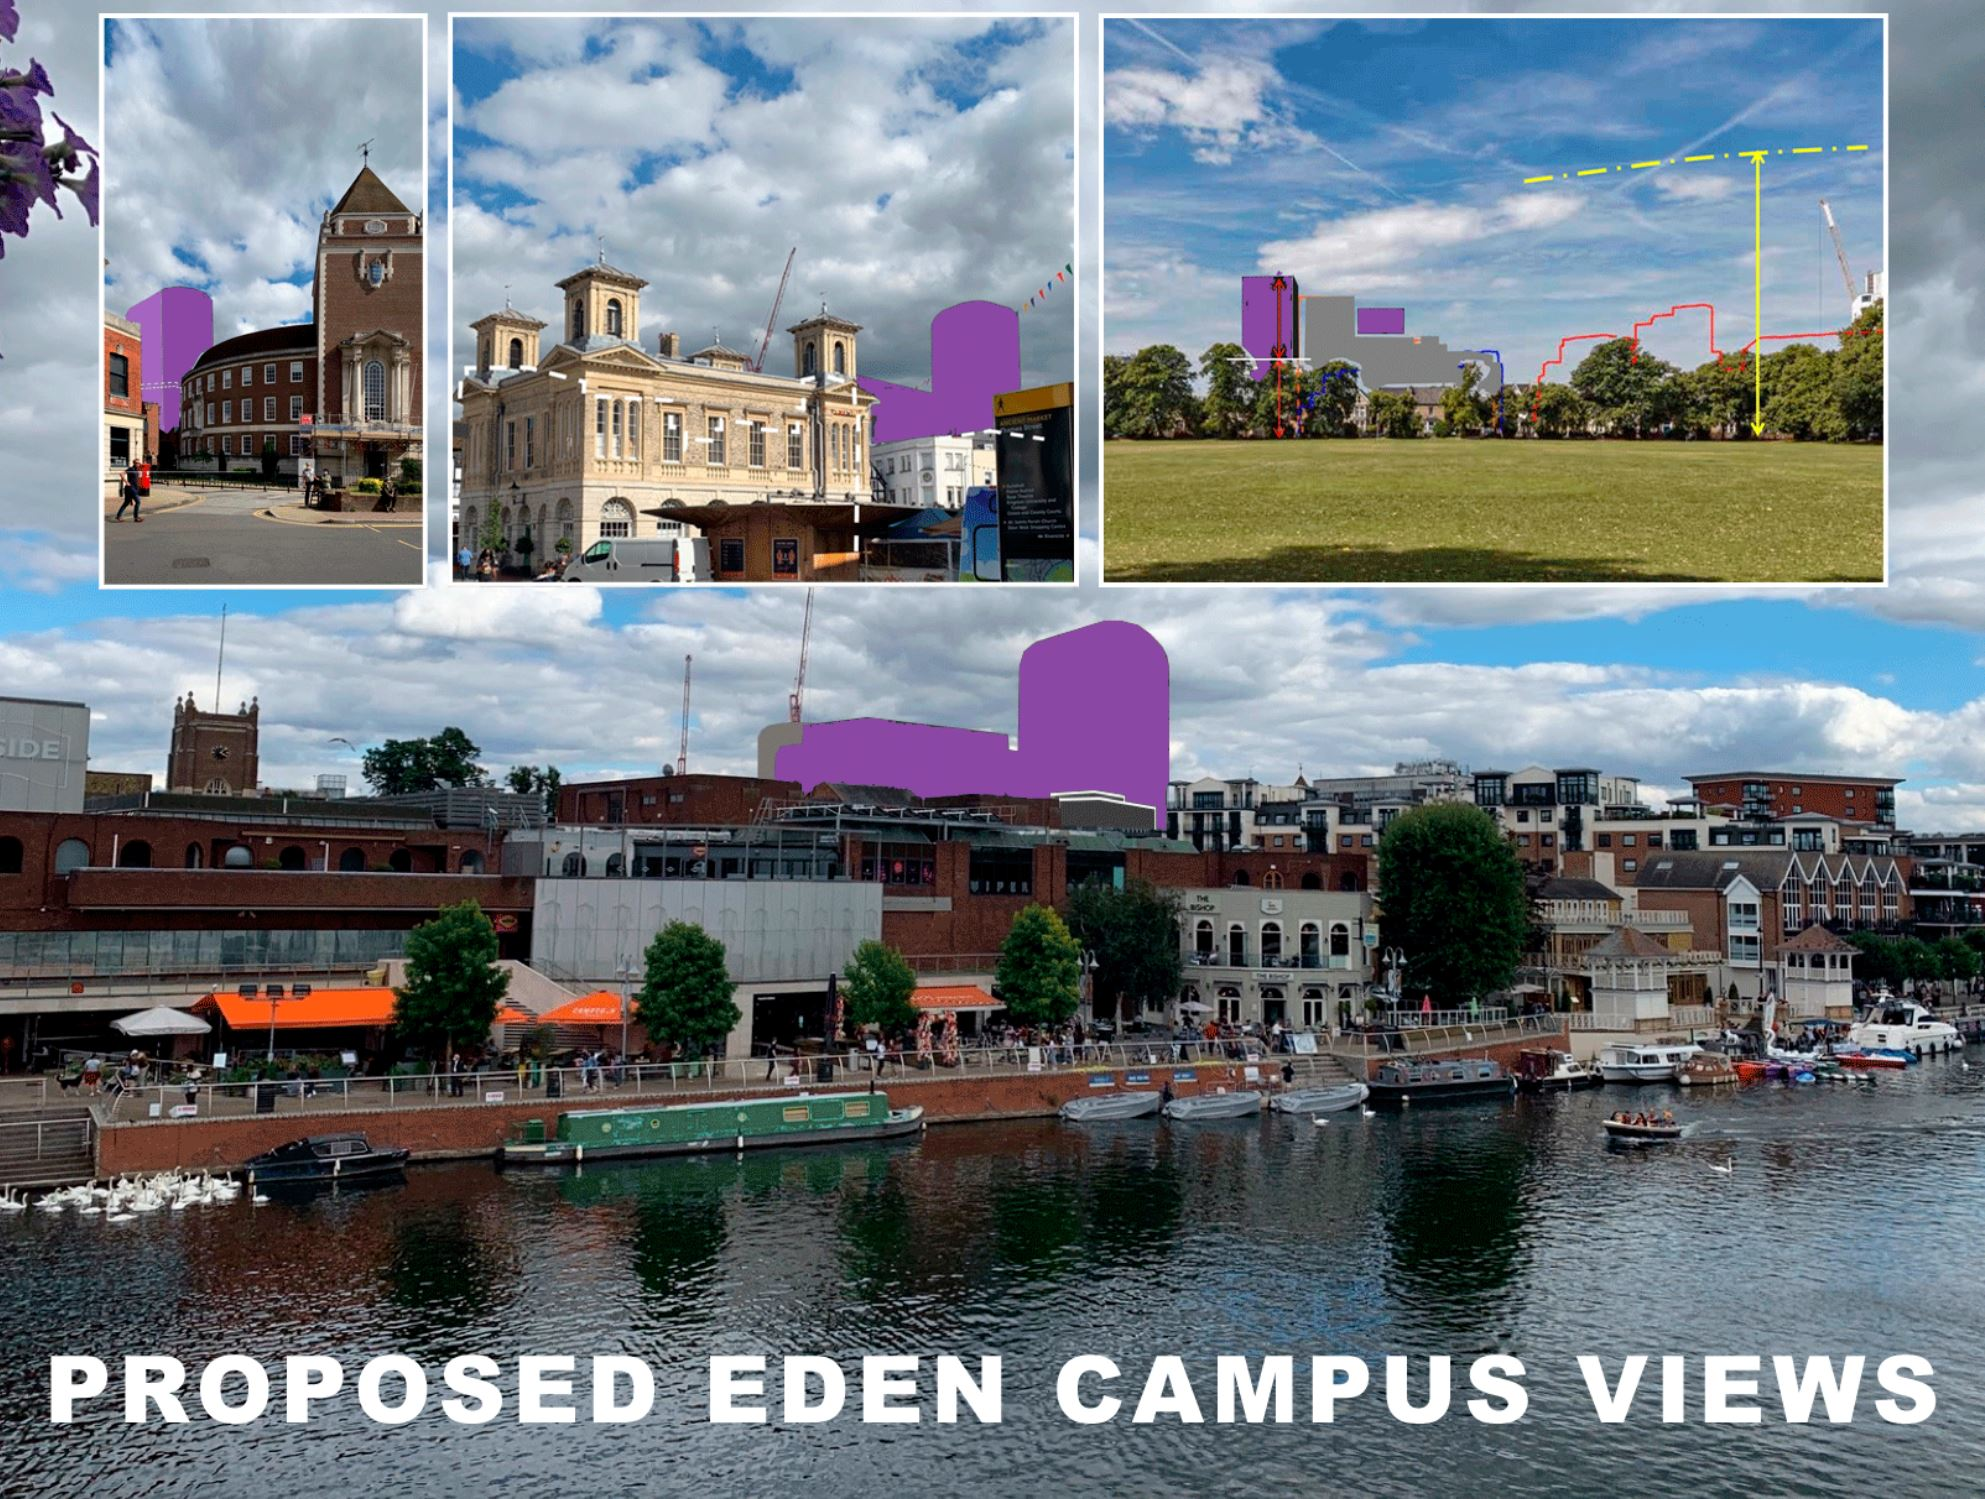 Eden Campus impact - picture from Edencampusviews.co.uk website